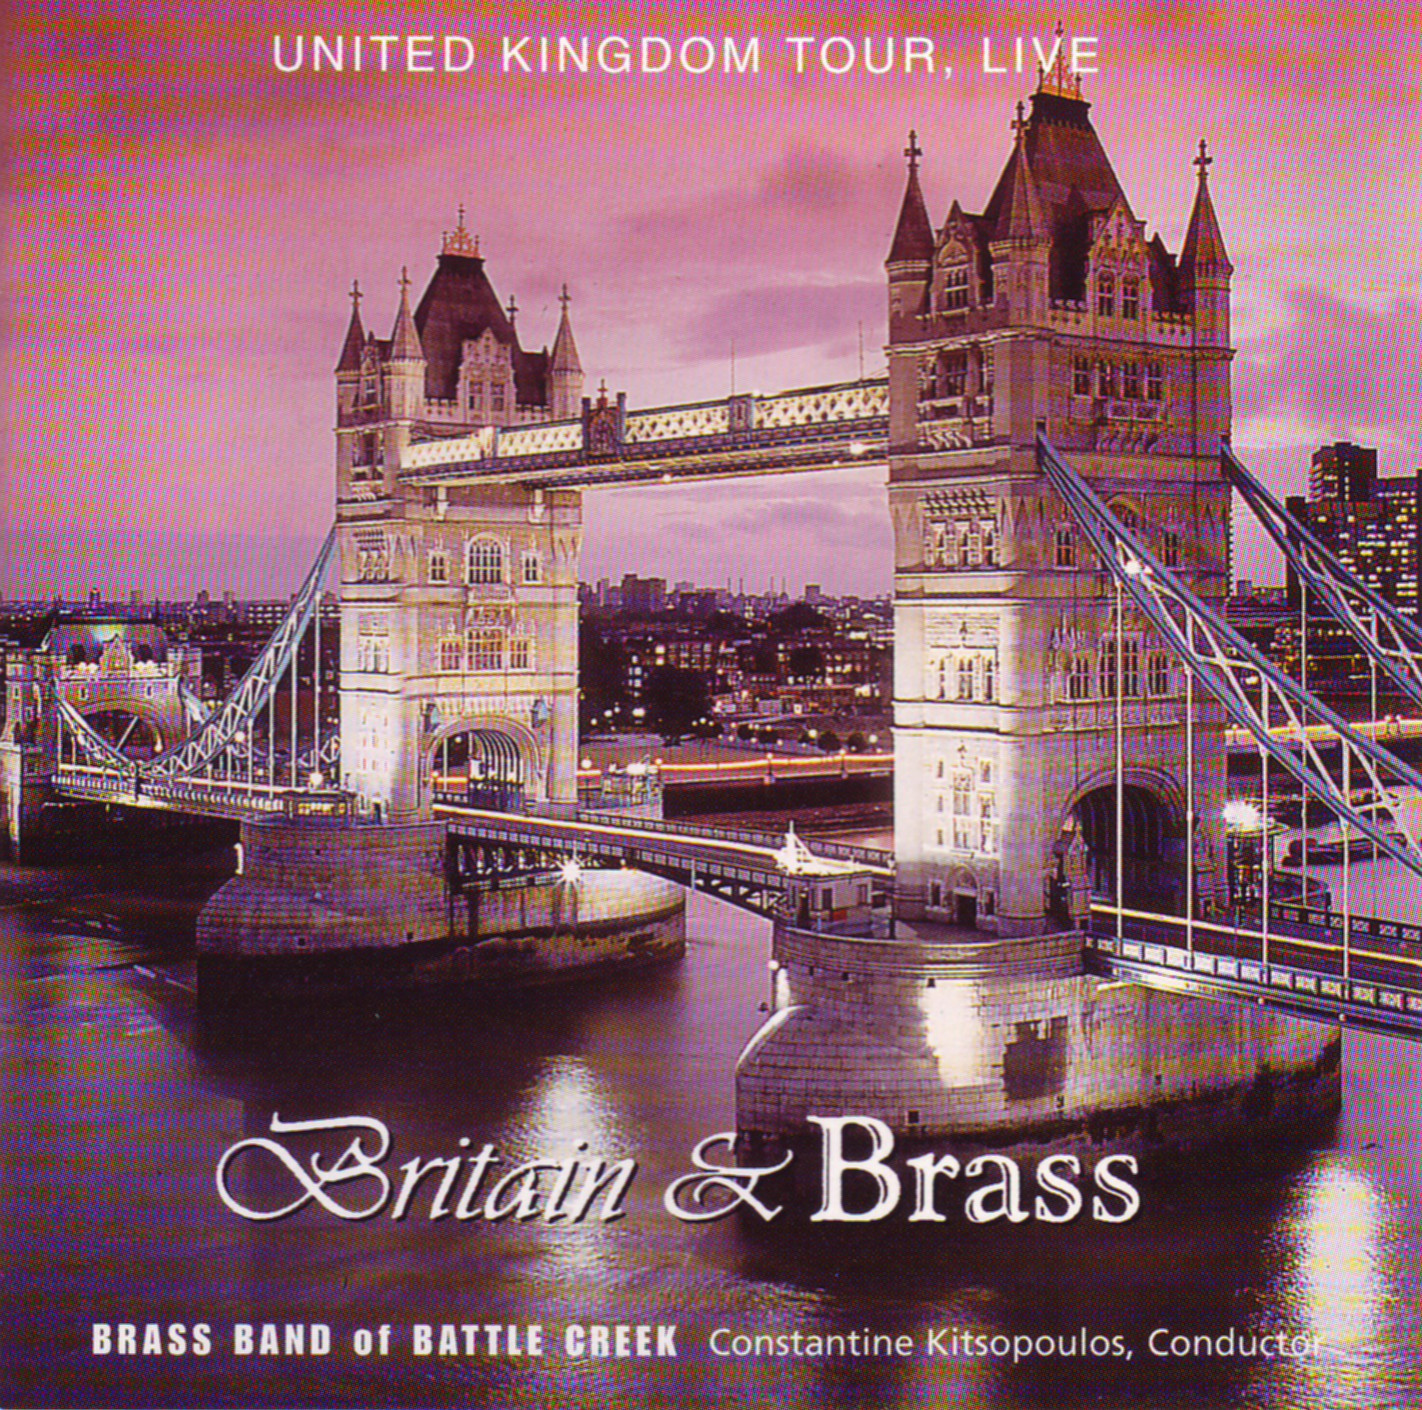 Britain & Brass